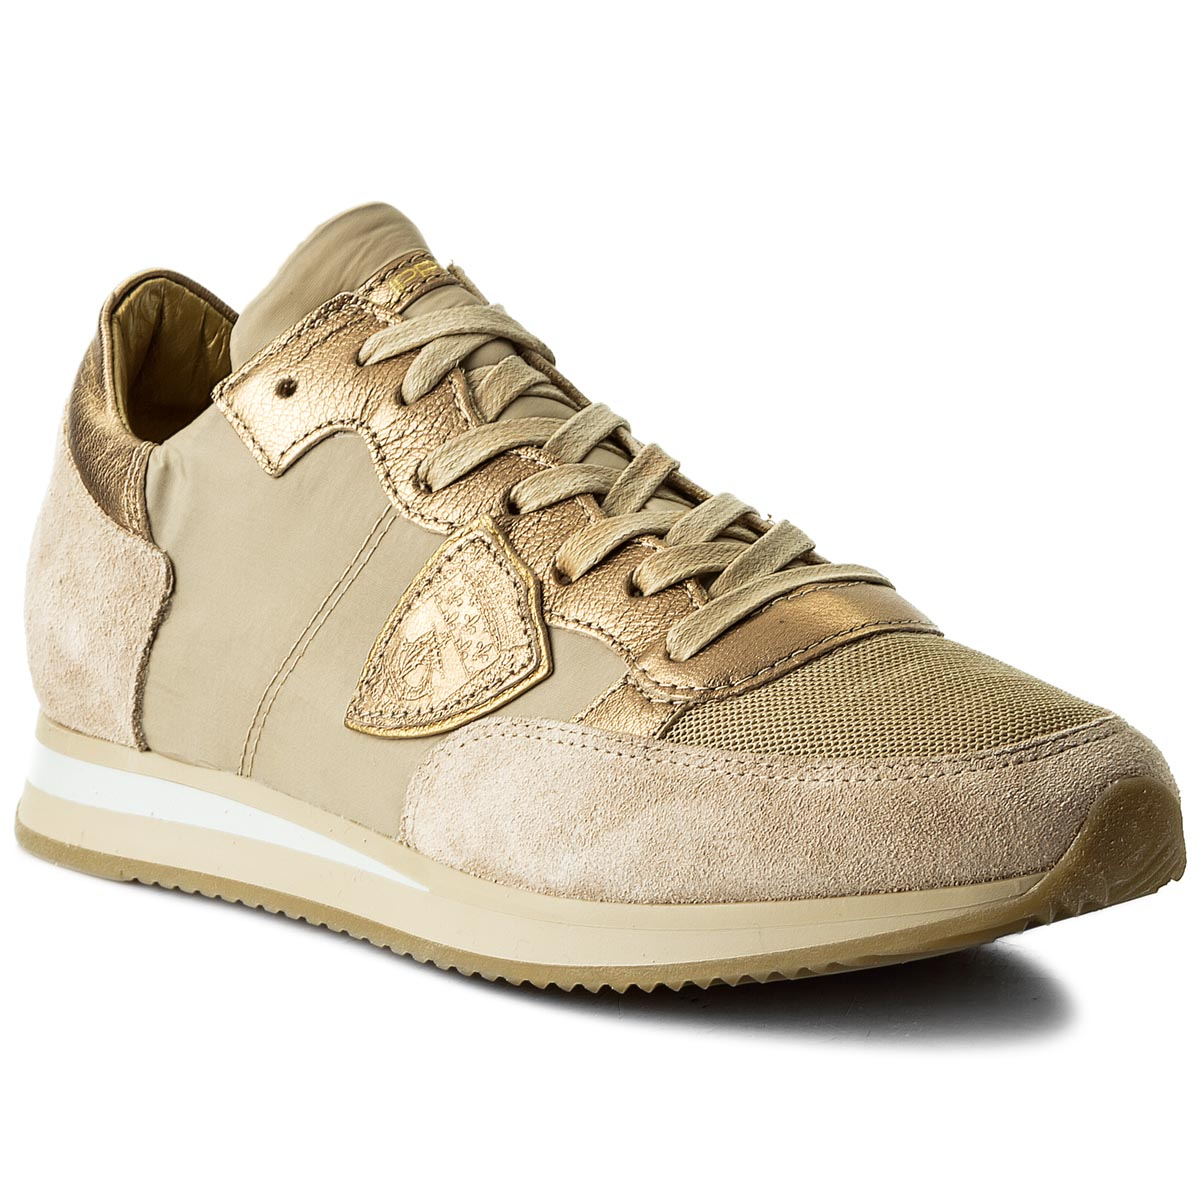 Sneakersy PHILIPPE MODEL - Tropez TRLD W001 Mondial Boue/Or